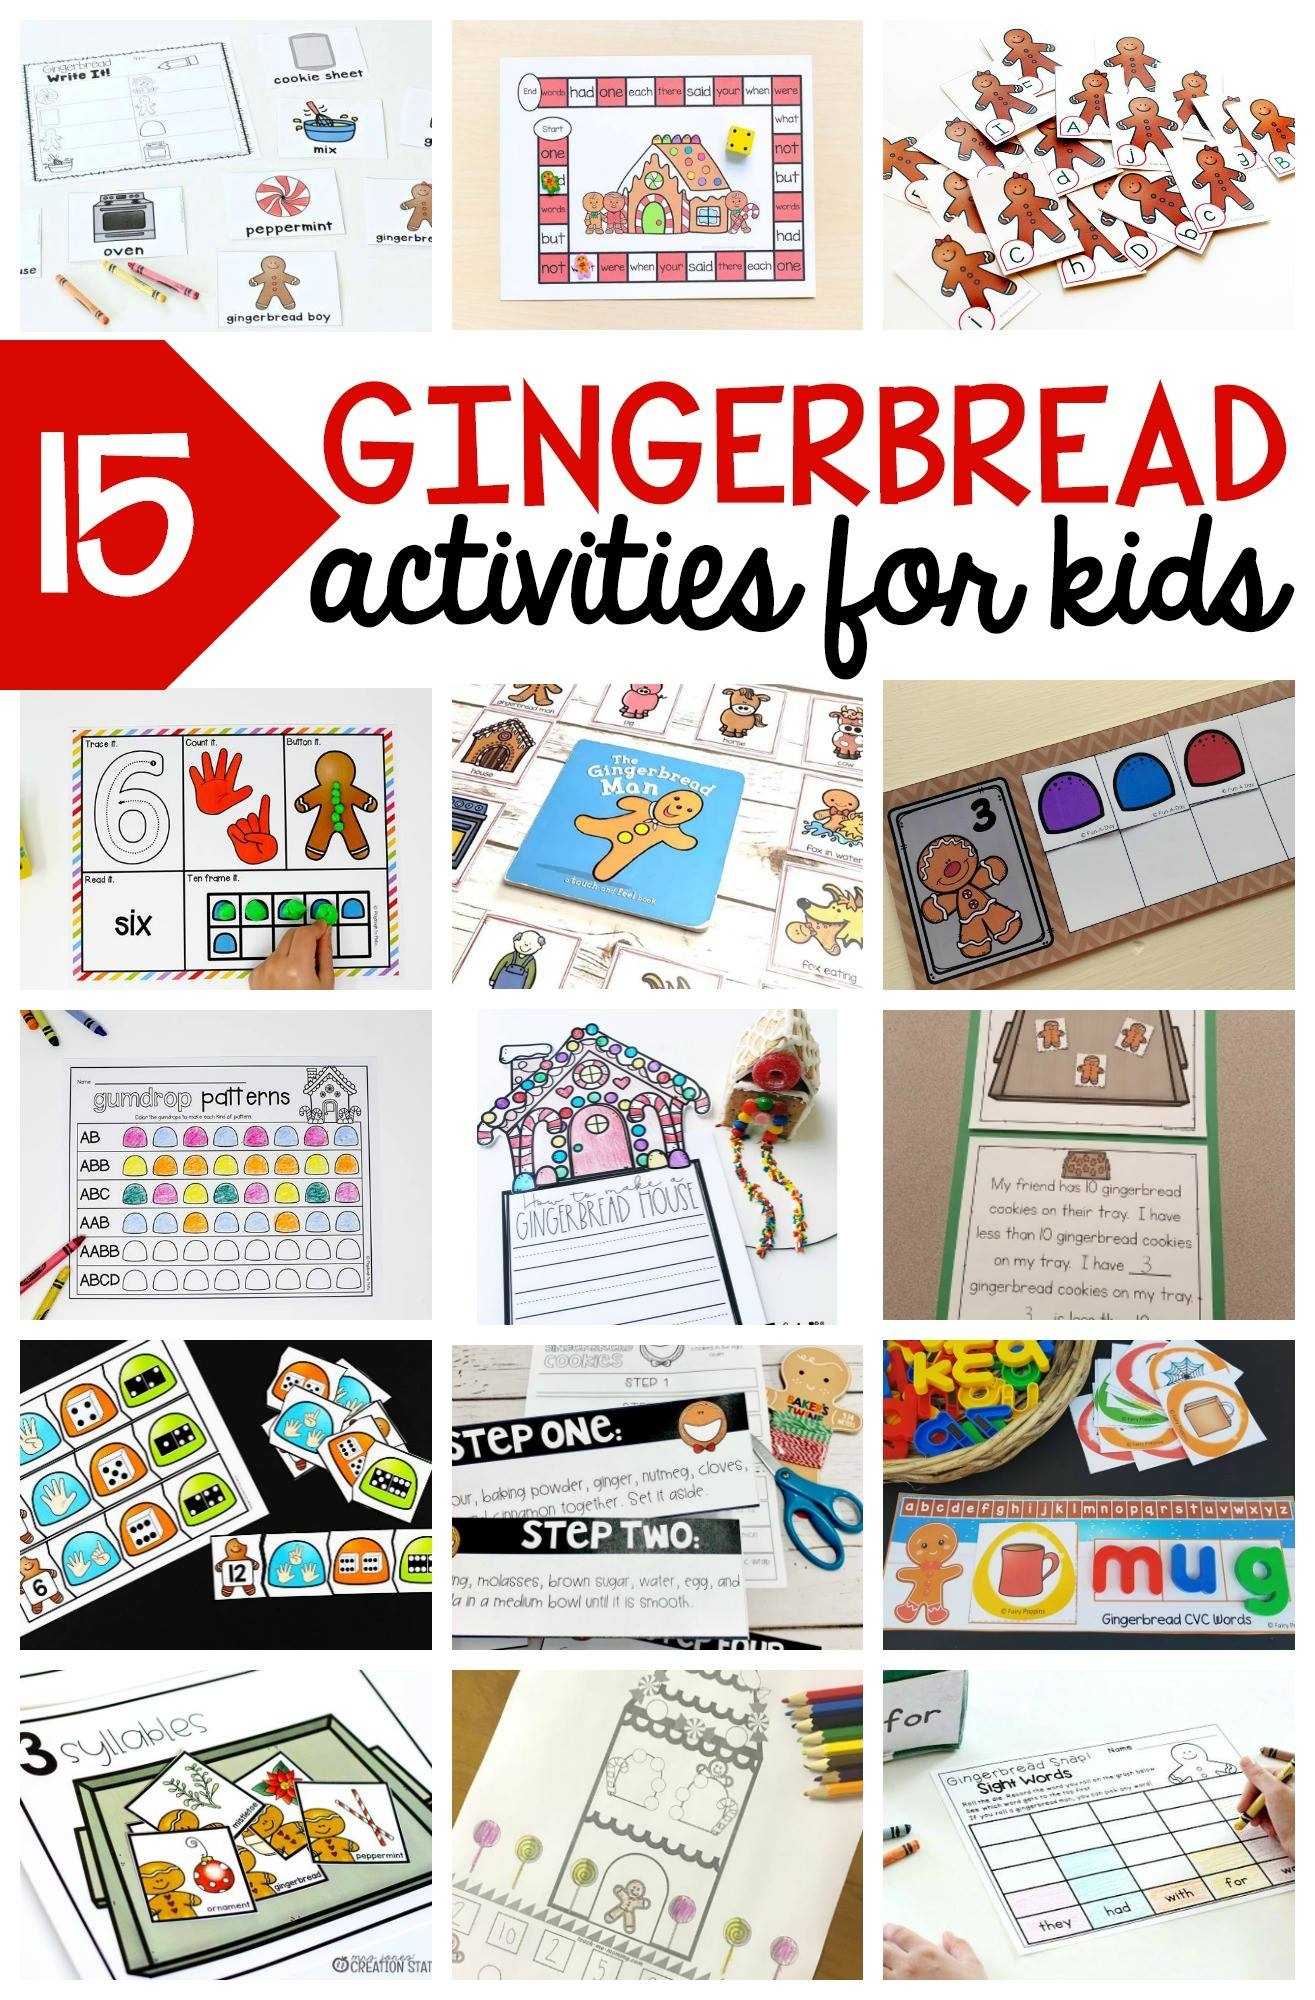 Gingerbread Man Theme Old Maid Card Game - Stay At Home Educator - Free Printable Old Maid Card Game